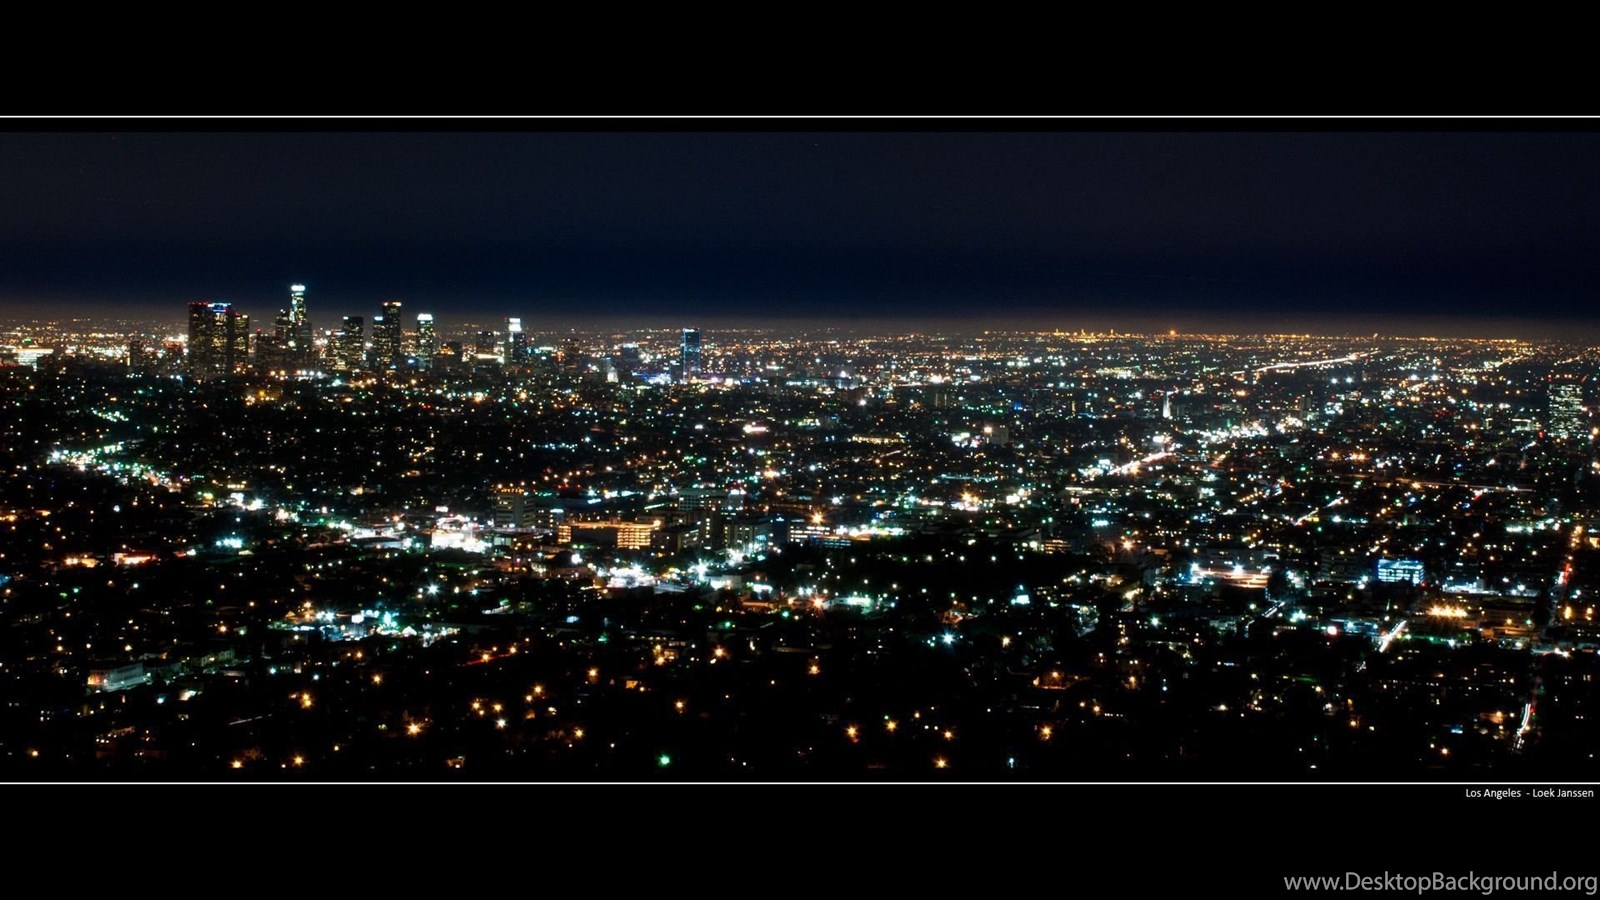 Most Inspiring Wallpaper Night Los Angeles - 53263_los-angeles-skyline-at-night-wallpapers-desktop-backgrounds-1920-x_1920x1080_h  Picture-159986.jpg